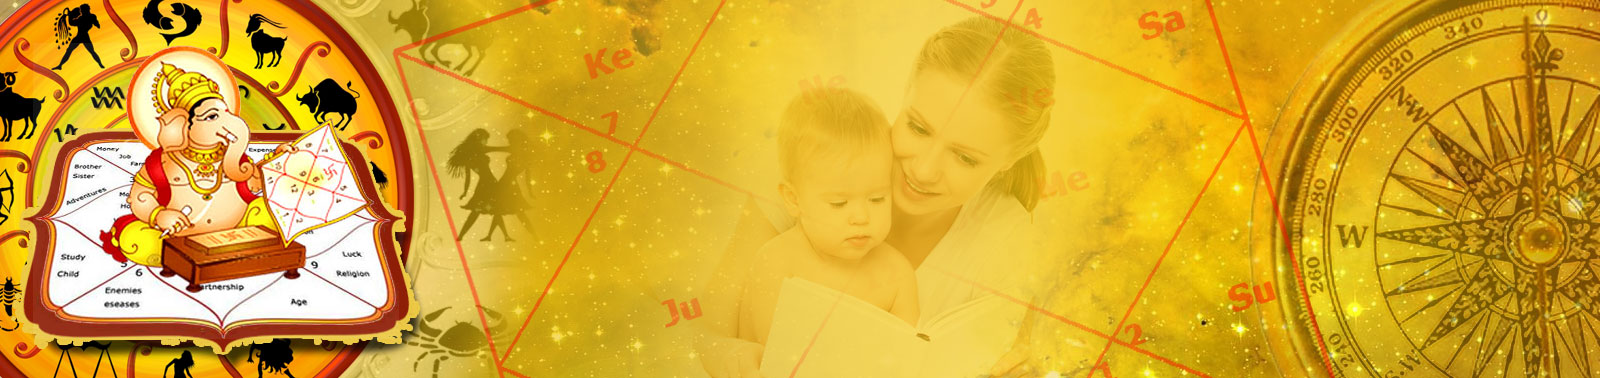 Premium Horoscopes banner